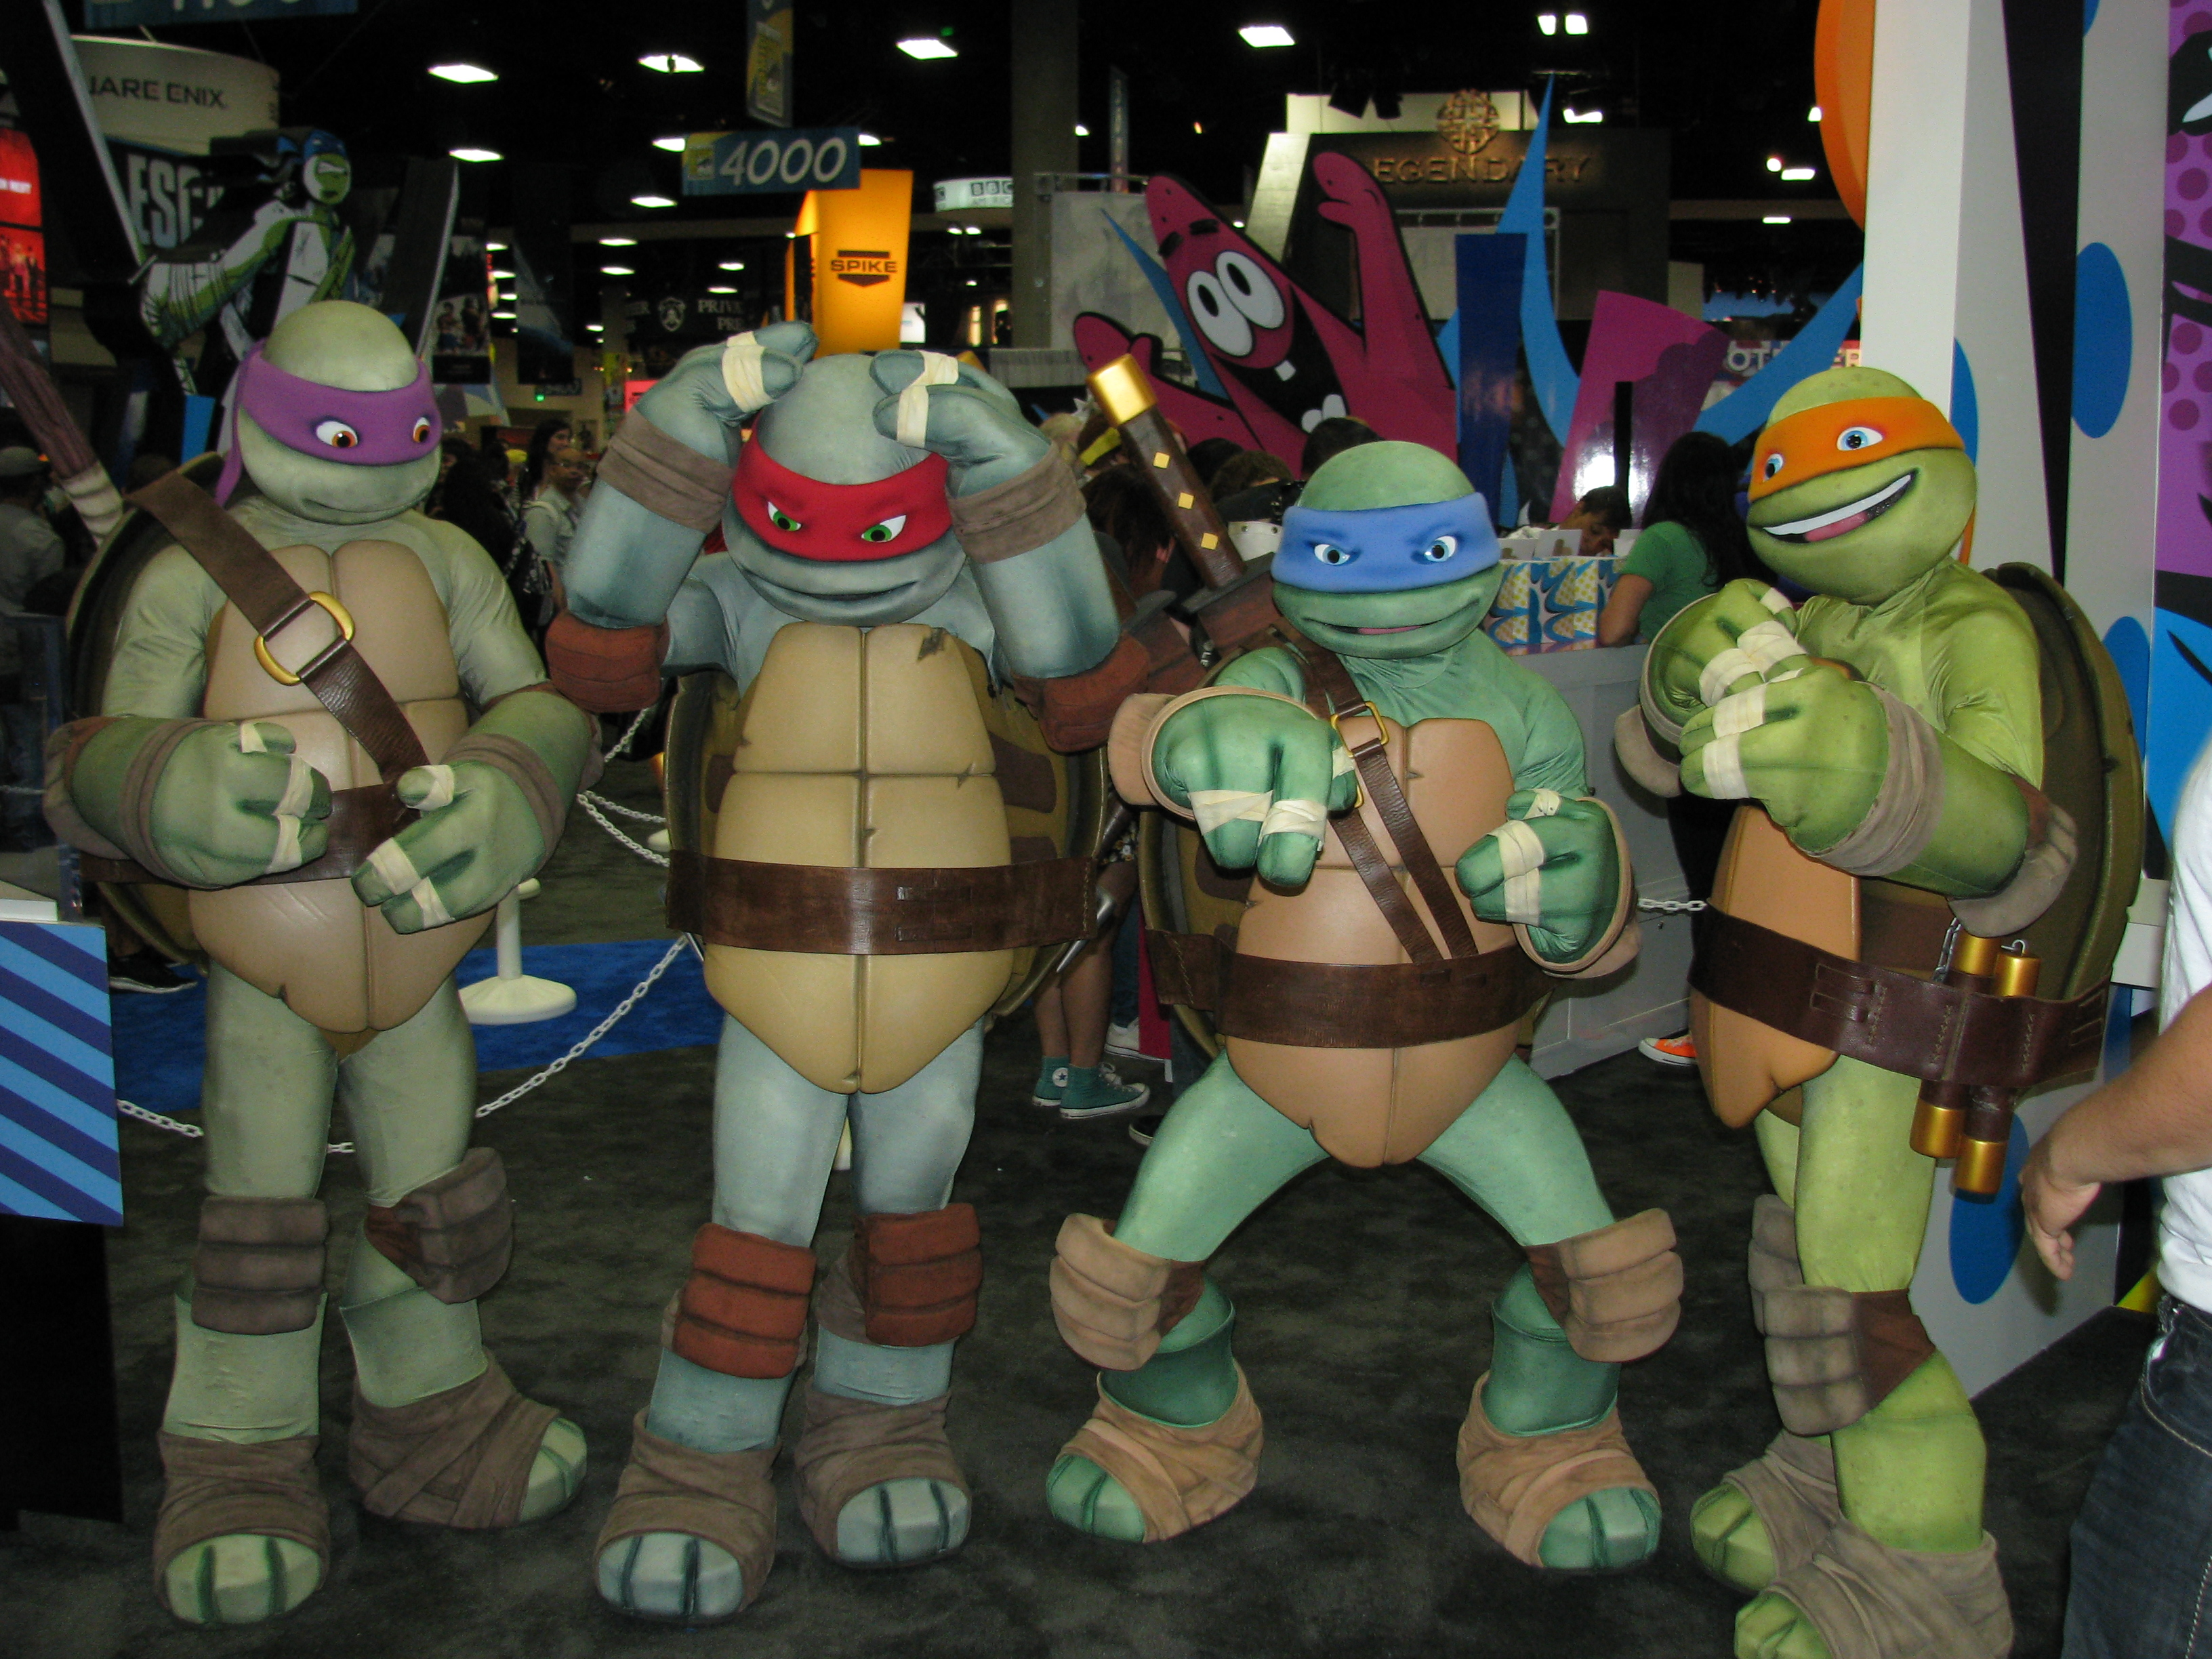 The entire TMNT at the Nickelodeon booth! - by SDCC13 - TMNT, Uploaded by daisydeee, William Tung from USA (SDCC13_-_TMNT_(9348046202).jpg) (CC BY-SA 2.0 [https://creativecommons.org/licenses/by-sa/2.0/deed.en]), via Wikimedia Commons